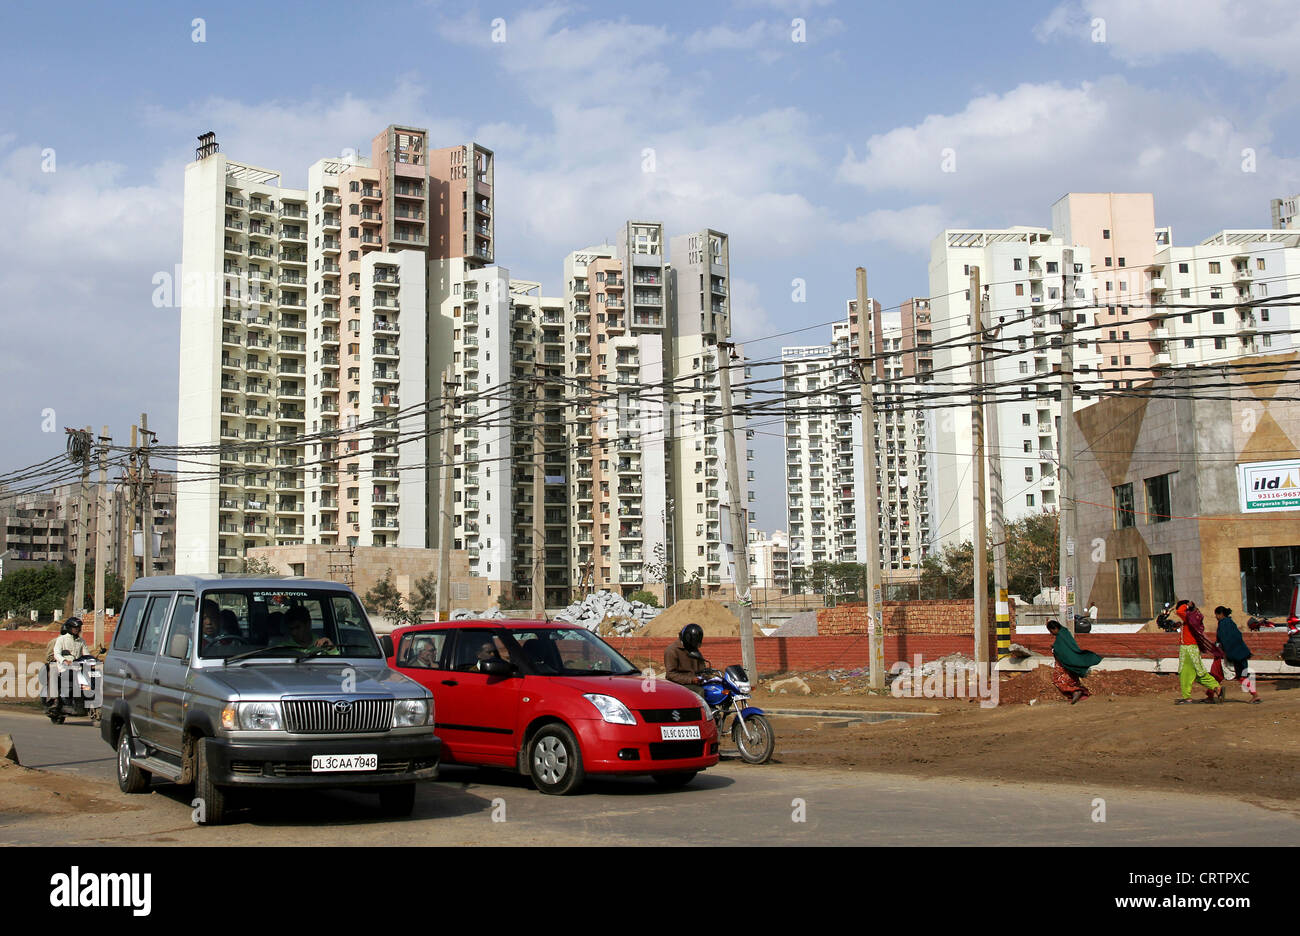 New buildings for the middle class in New Delhi, India - Stock Image